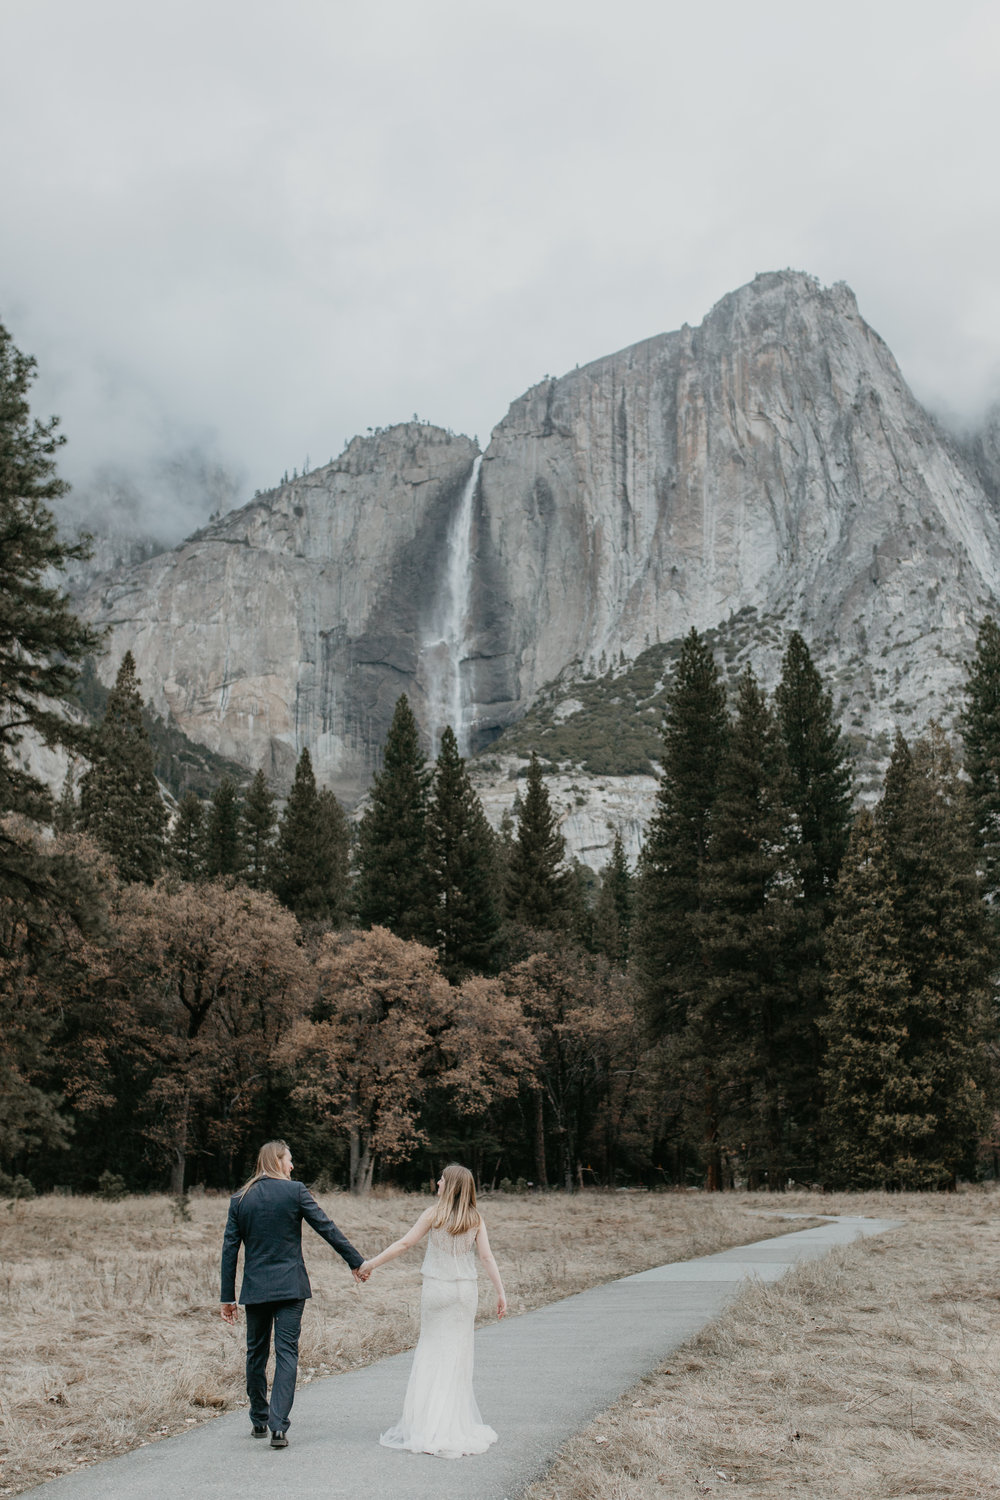 nicole-daacke-photography-yousemite-national-park-elopement-photographer-winter-cloud-moody-elope-inspiration-yosemite-valley-tunnel-view-winter-cloud-fog-weather-wedding-photos-20.jpg